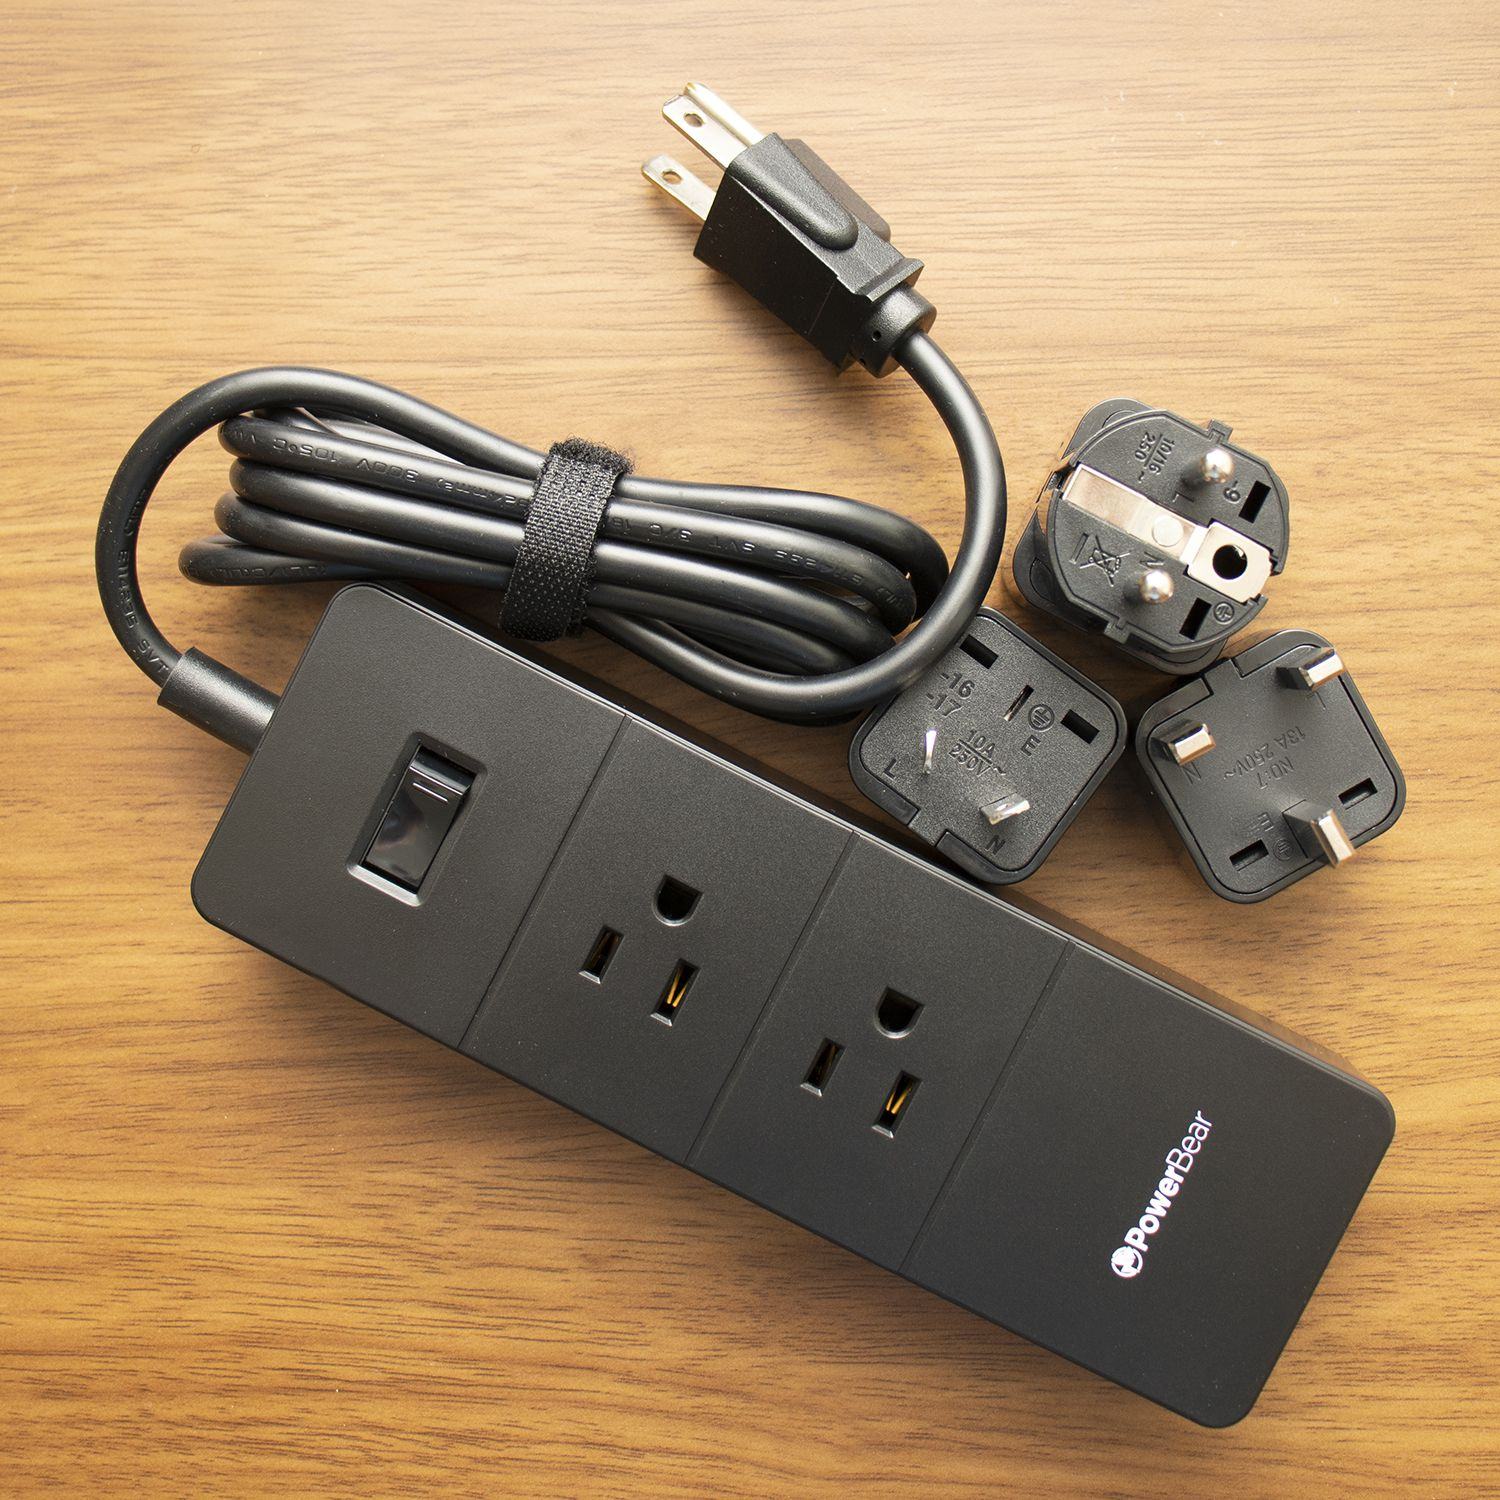 PowerBear Travel Adapter and Surge Protection Strip Review